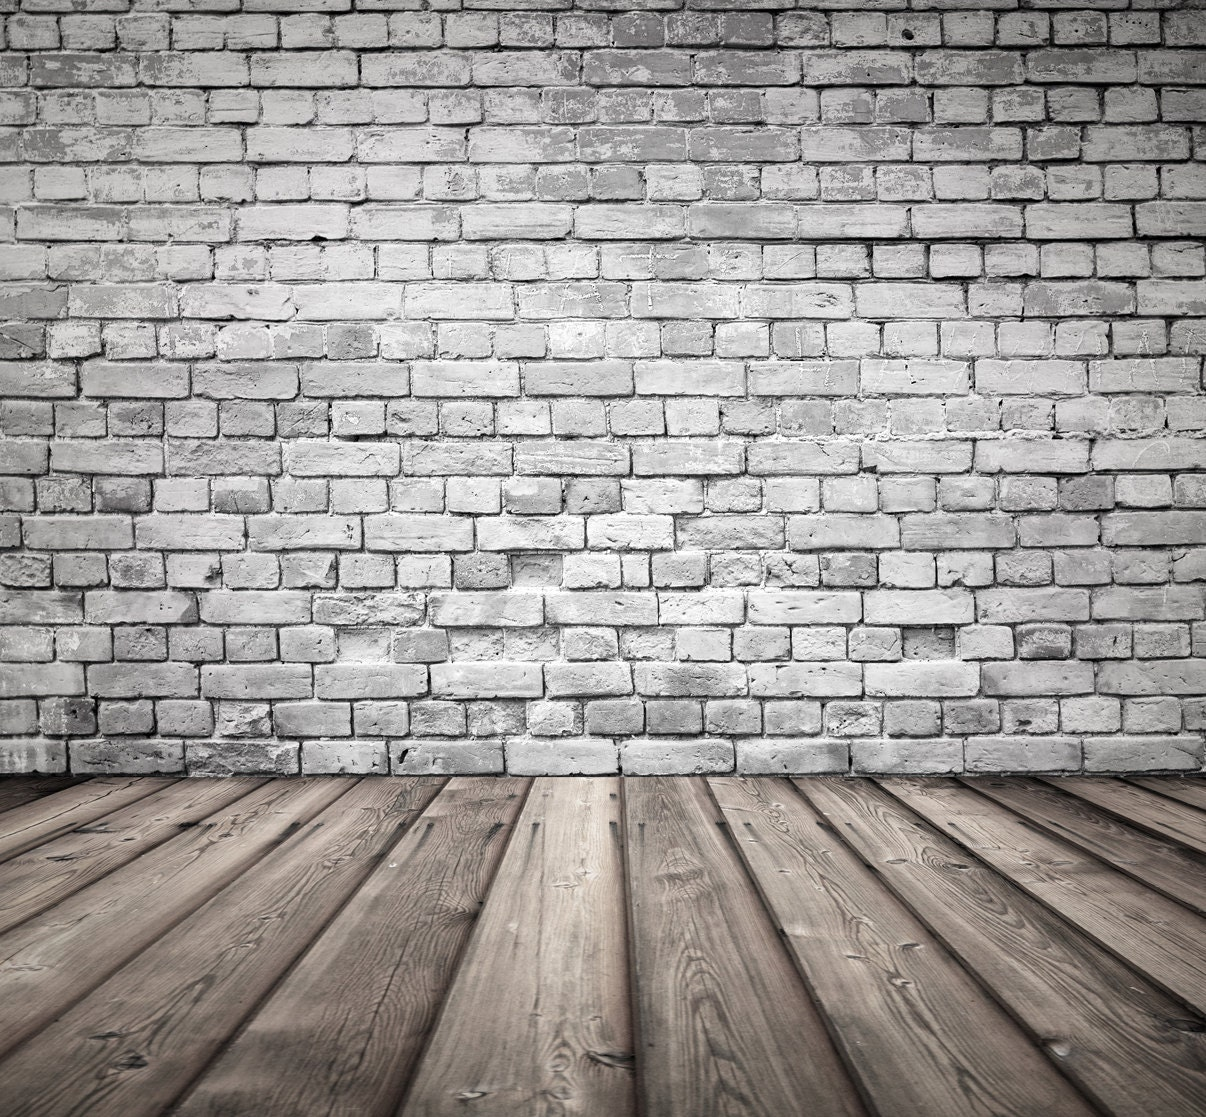 Hourwall Classicbrick Vintagewhite: Broken Grey Brick Backdrop Old White Brick Wall With Wood